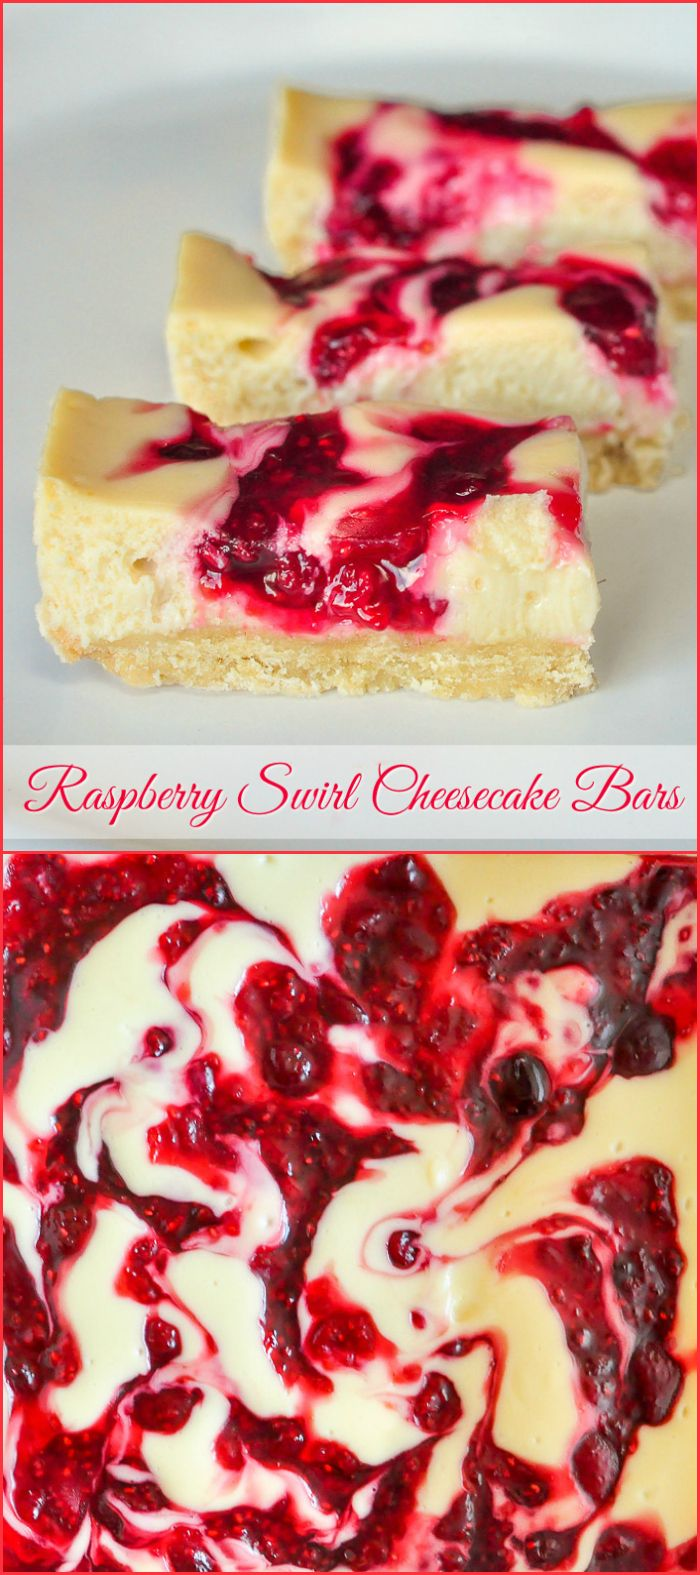 Raspberry Swirl Cheesecake Bars - ONLY 135 CALORIES! #RockRecipes100Cookies4Christmas Another recipe that does double duty in your holiday freezer. Cut them small as cookie bars or in larger servings for dessert. #RockRecipes100Cookies4Christmas